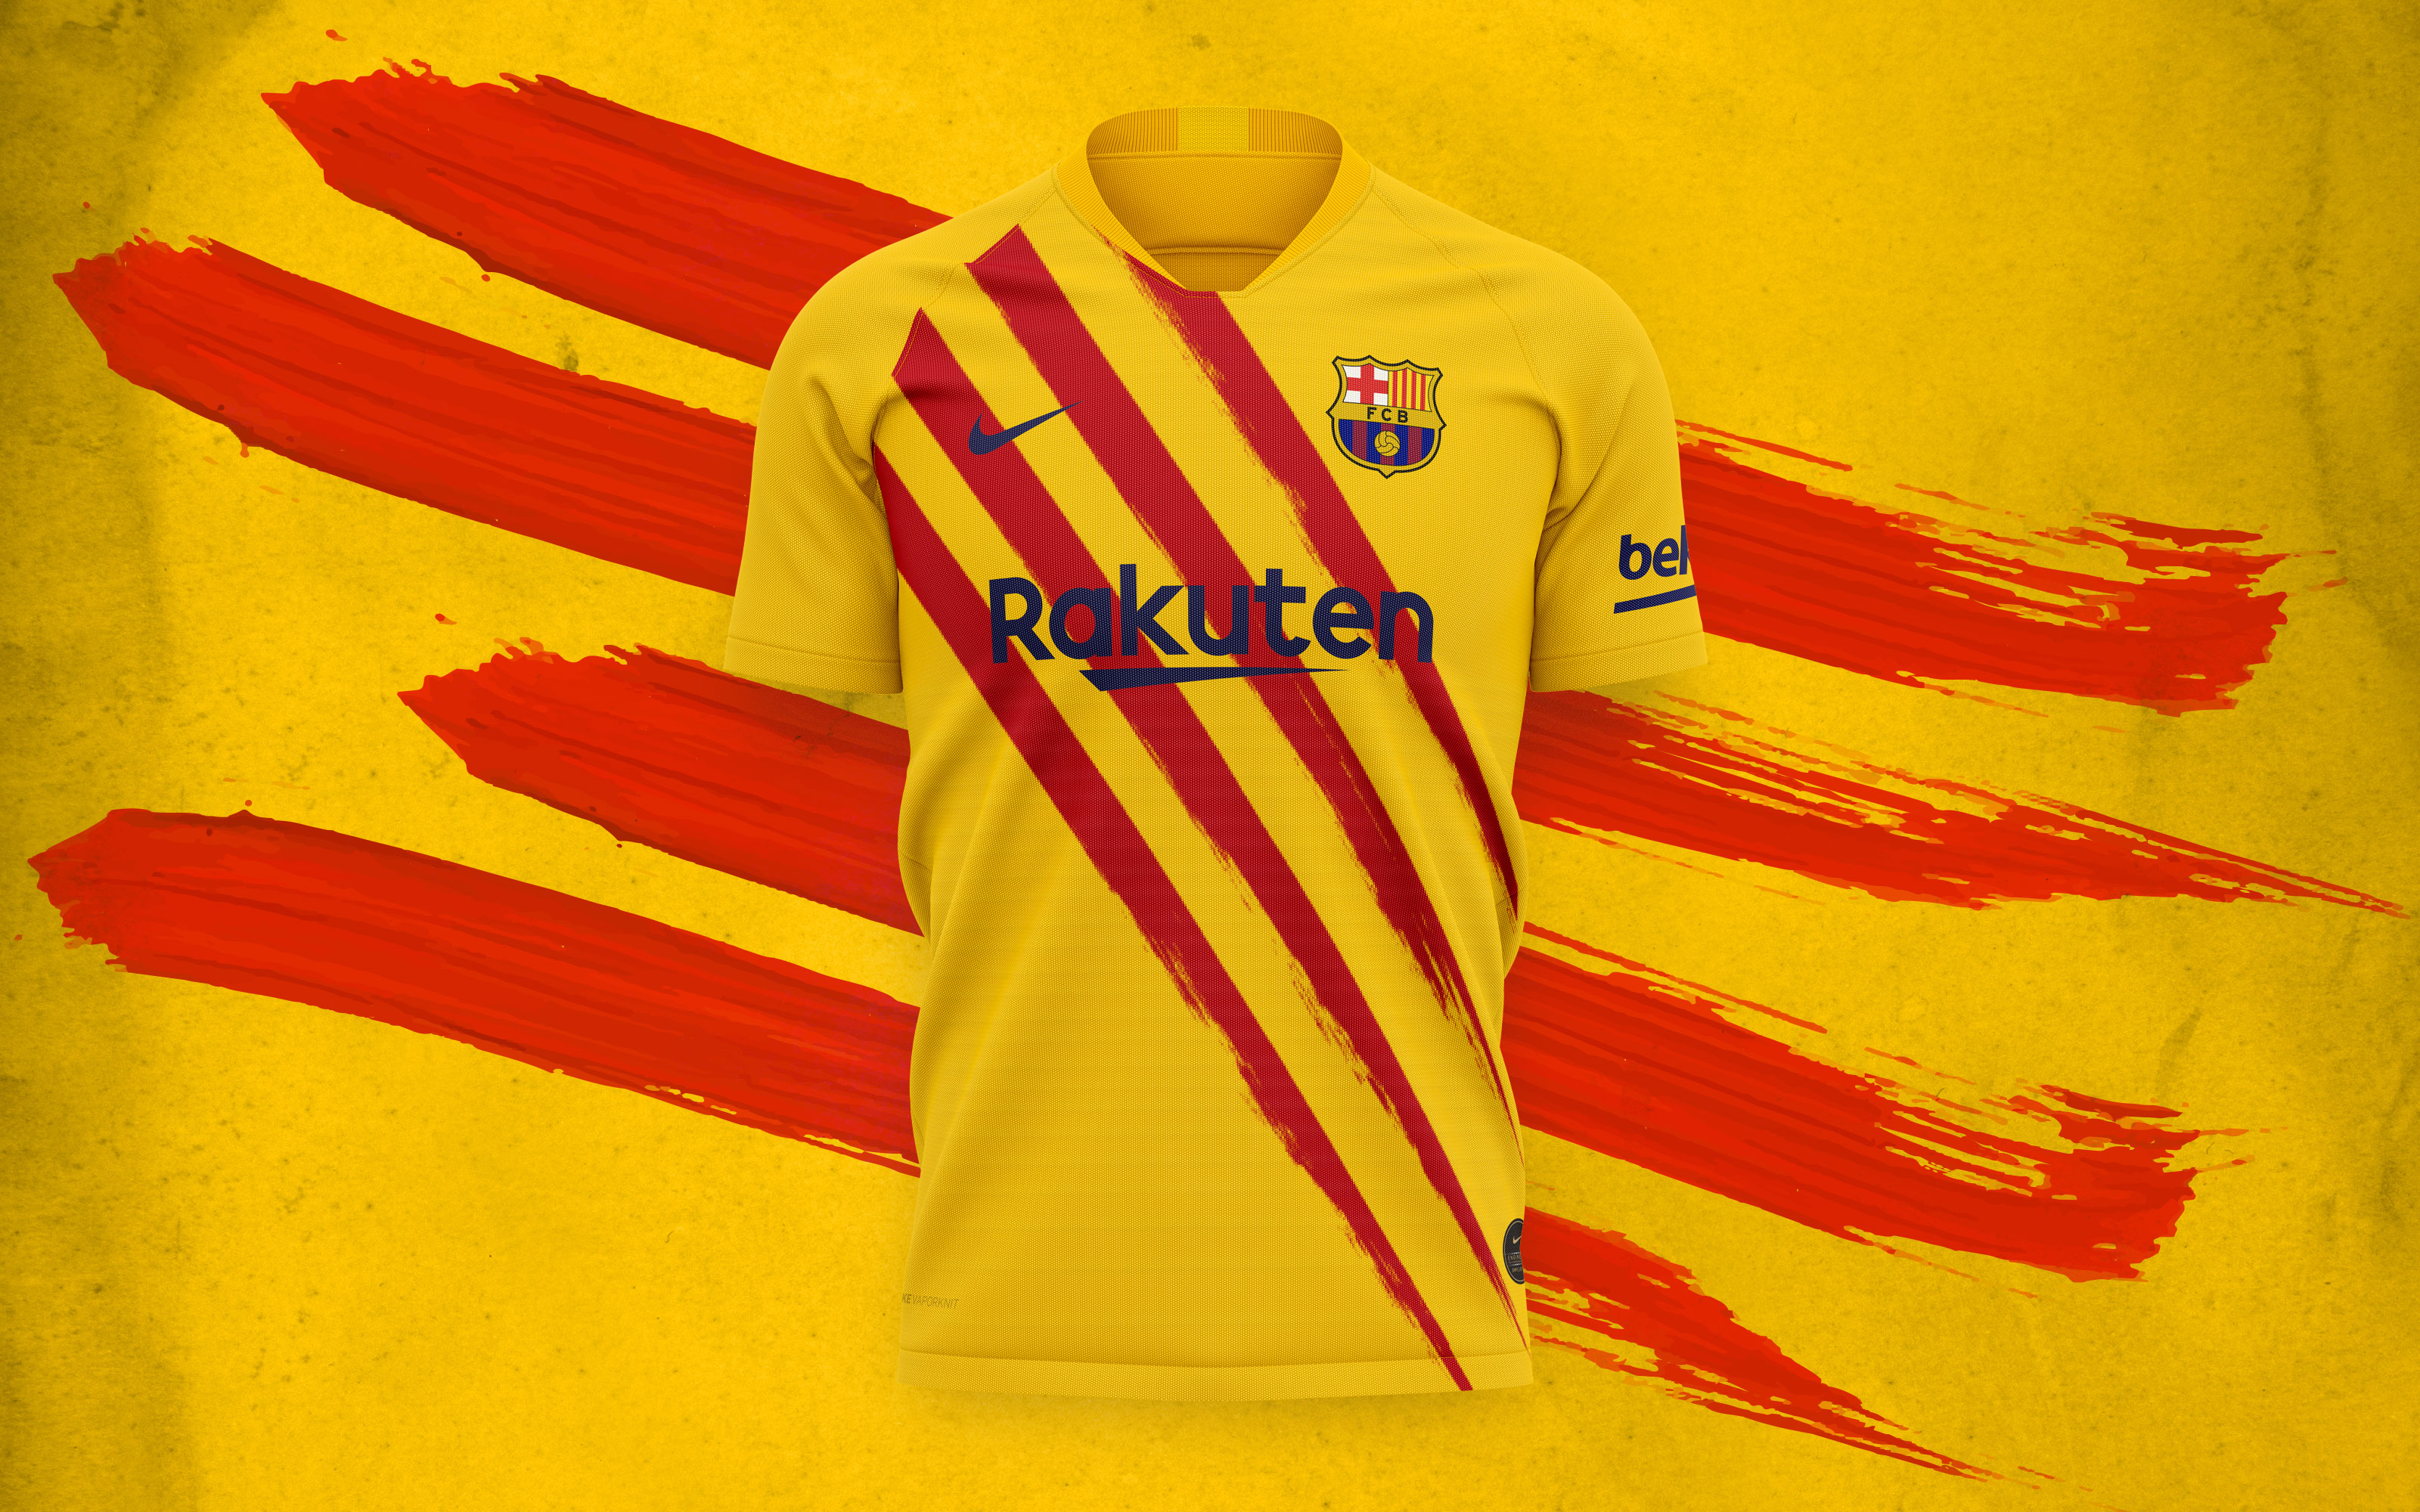 new barca kit honours club s roots by featuring colours of the catalan flag featuring colours of the catalan flag